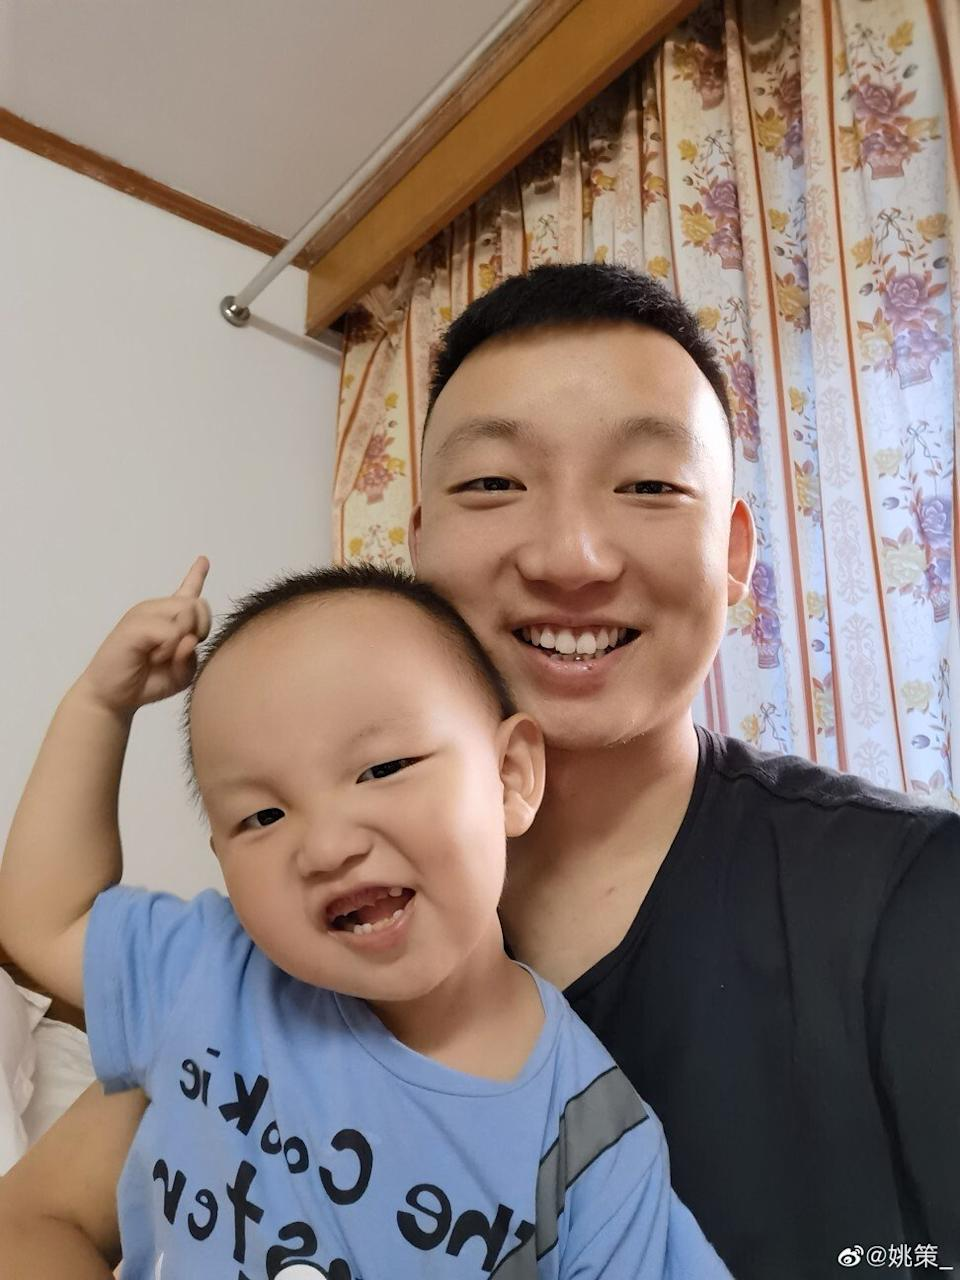 Yao with his son in Shanghai in June 2020. Photo: Weibo